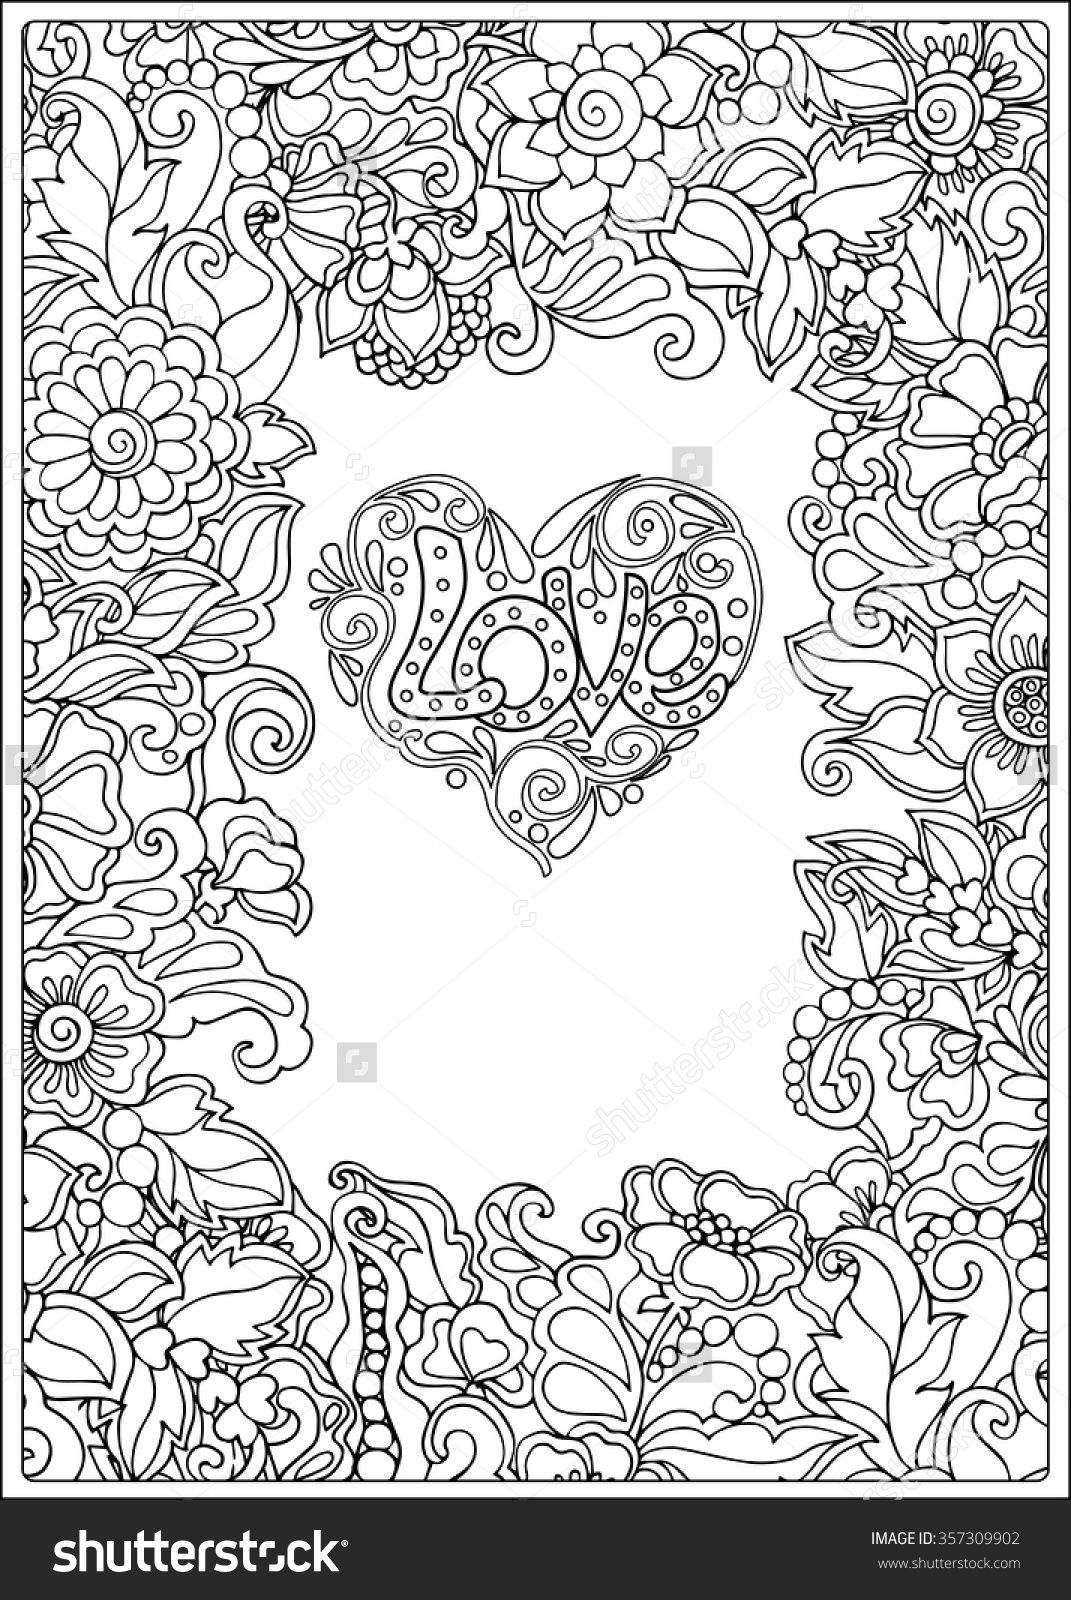 Coloring pages for adults valentines day - Valentines Day Card Coloring Book For Adult And Older Children Coloring Page Outline Drawing Vector Illustration Buy This Stock Vector On Shutterstock